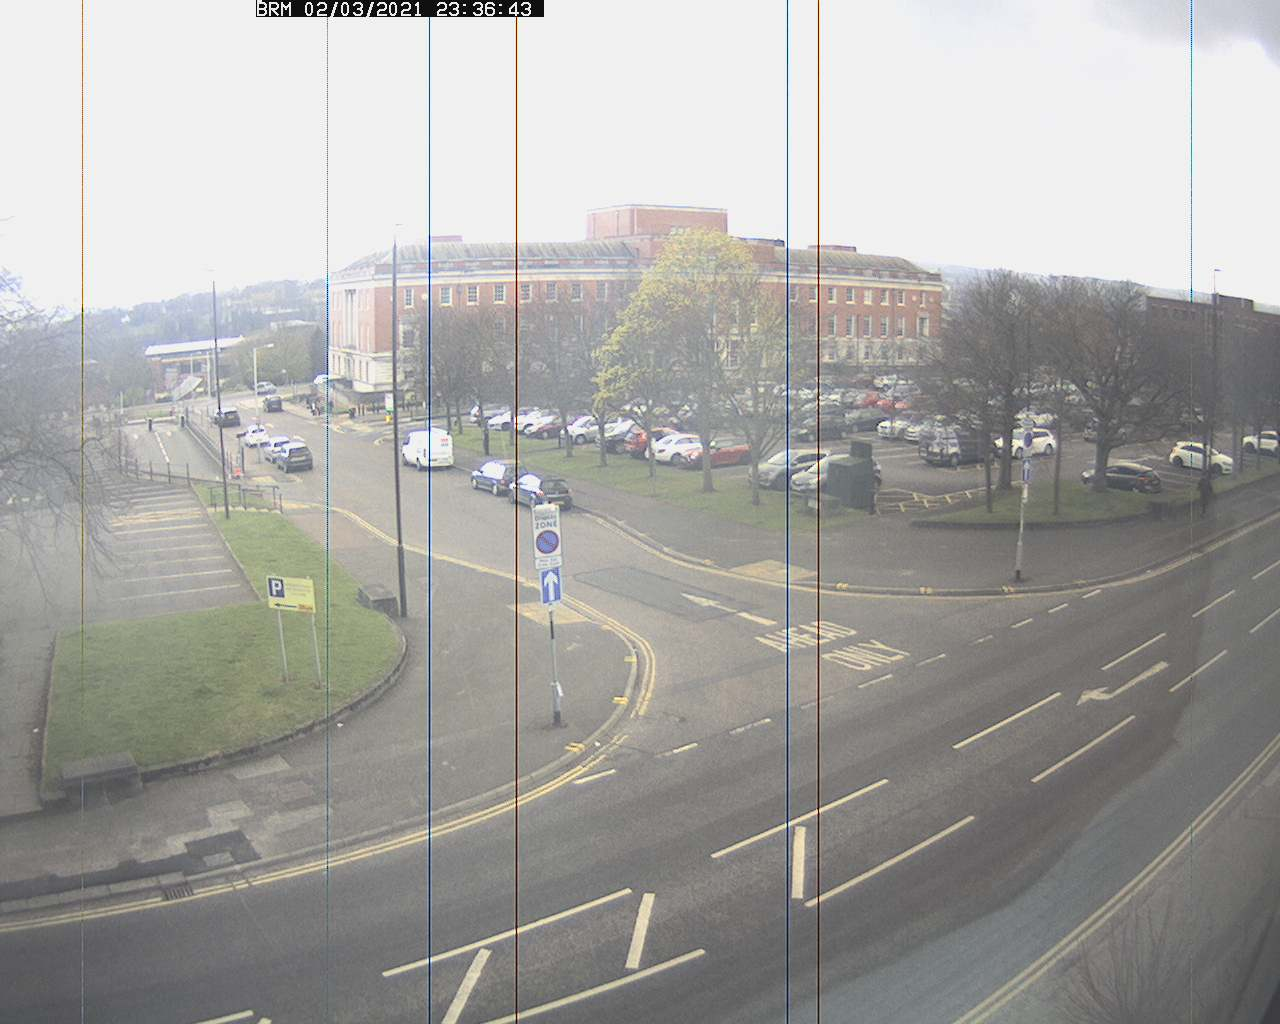 BRM webcam Chesterfield